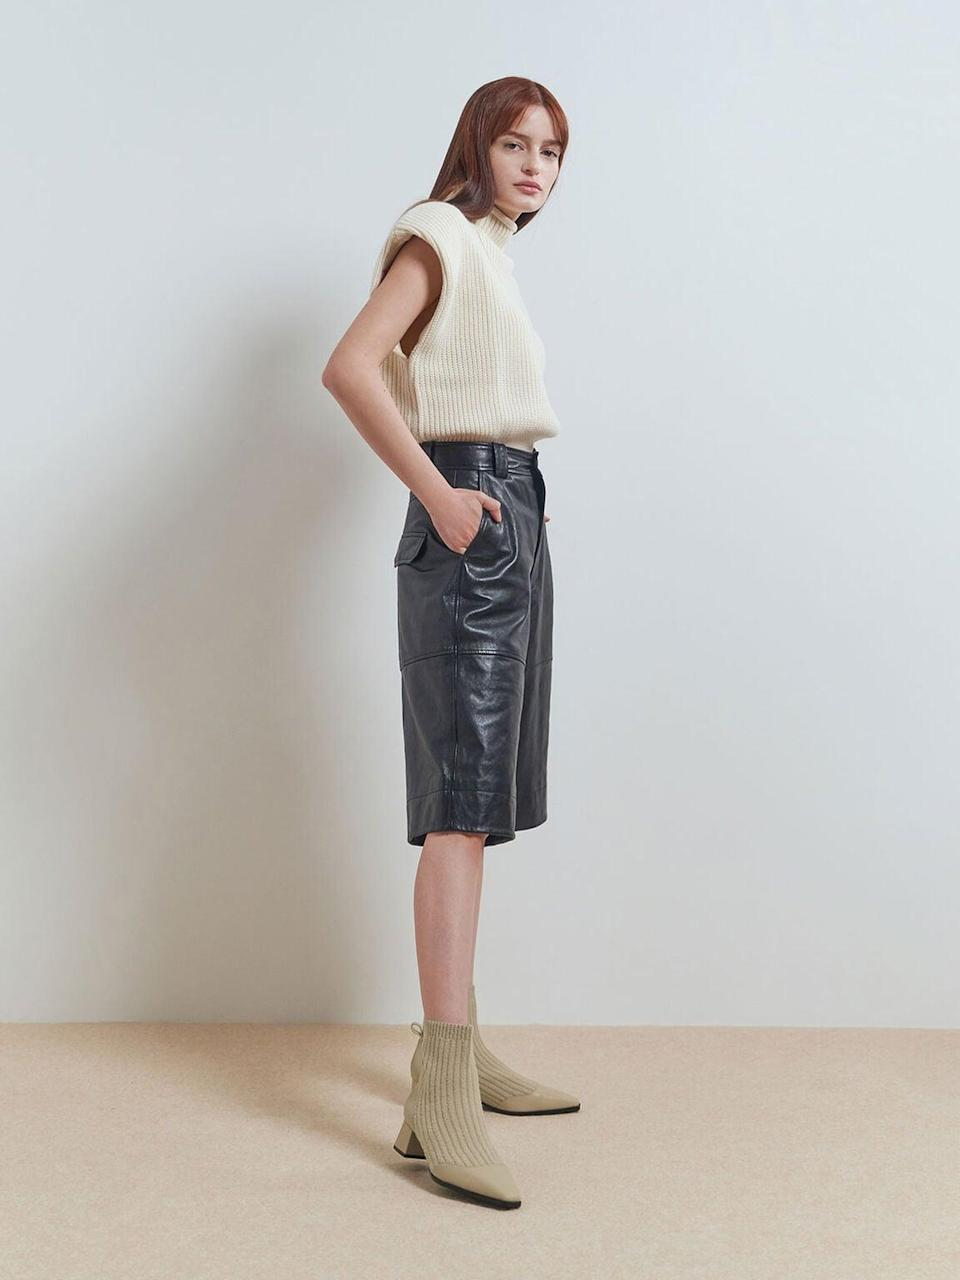 <p>Perhaps the sleekest style we'll see in 2021 is a heeled boot, whether low or high, that comes in neutral earth tones. Whether you prefer a pointed, square, or rounded toe, you can think of these as the antidote to the little white boot or black ankle boot. Use them to cap off a denim moment or complement your outerwear, and don't shy away from texture (think croc effect, animal print, or pebbled leather).</p> <p><span>Charles &amp; Keith Beige Knit Ankle Sock Boots<br> </span> ($73)</p>